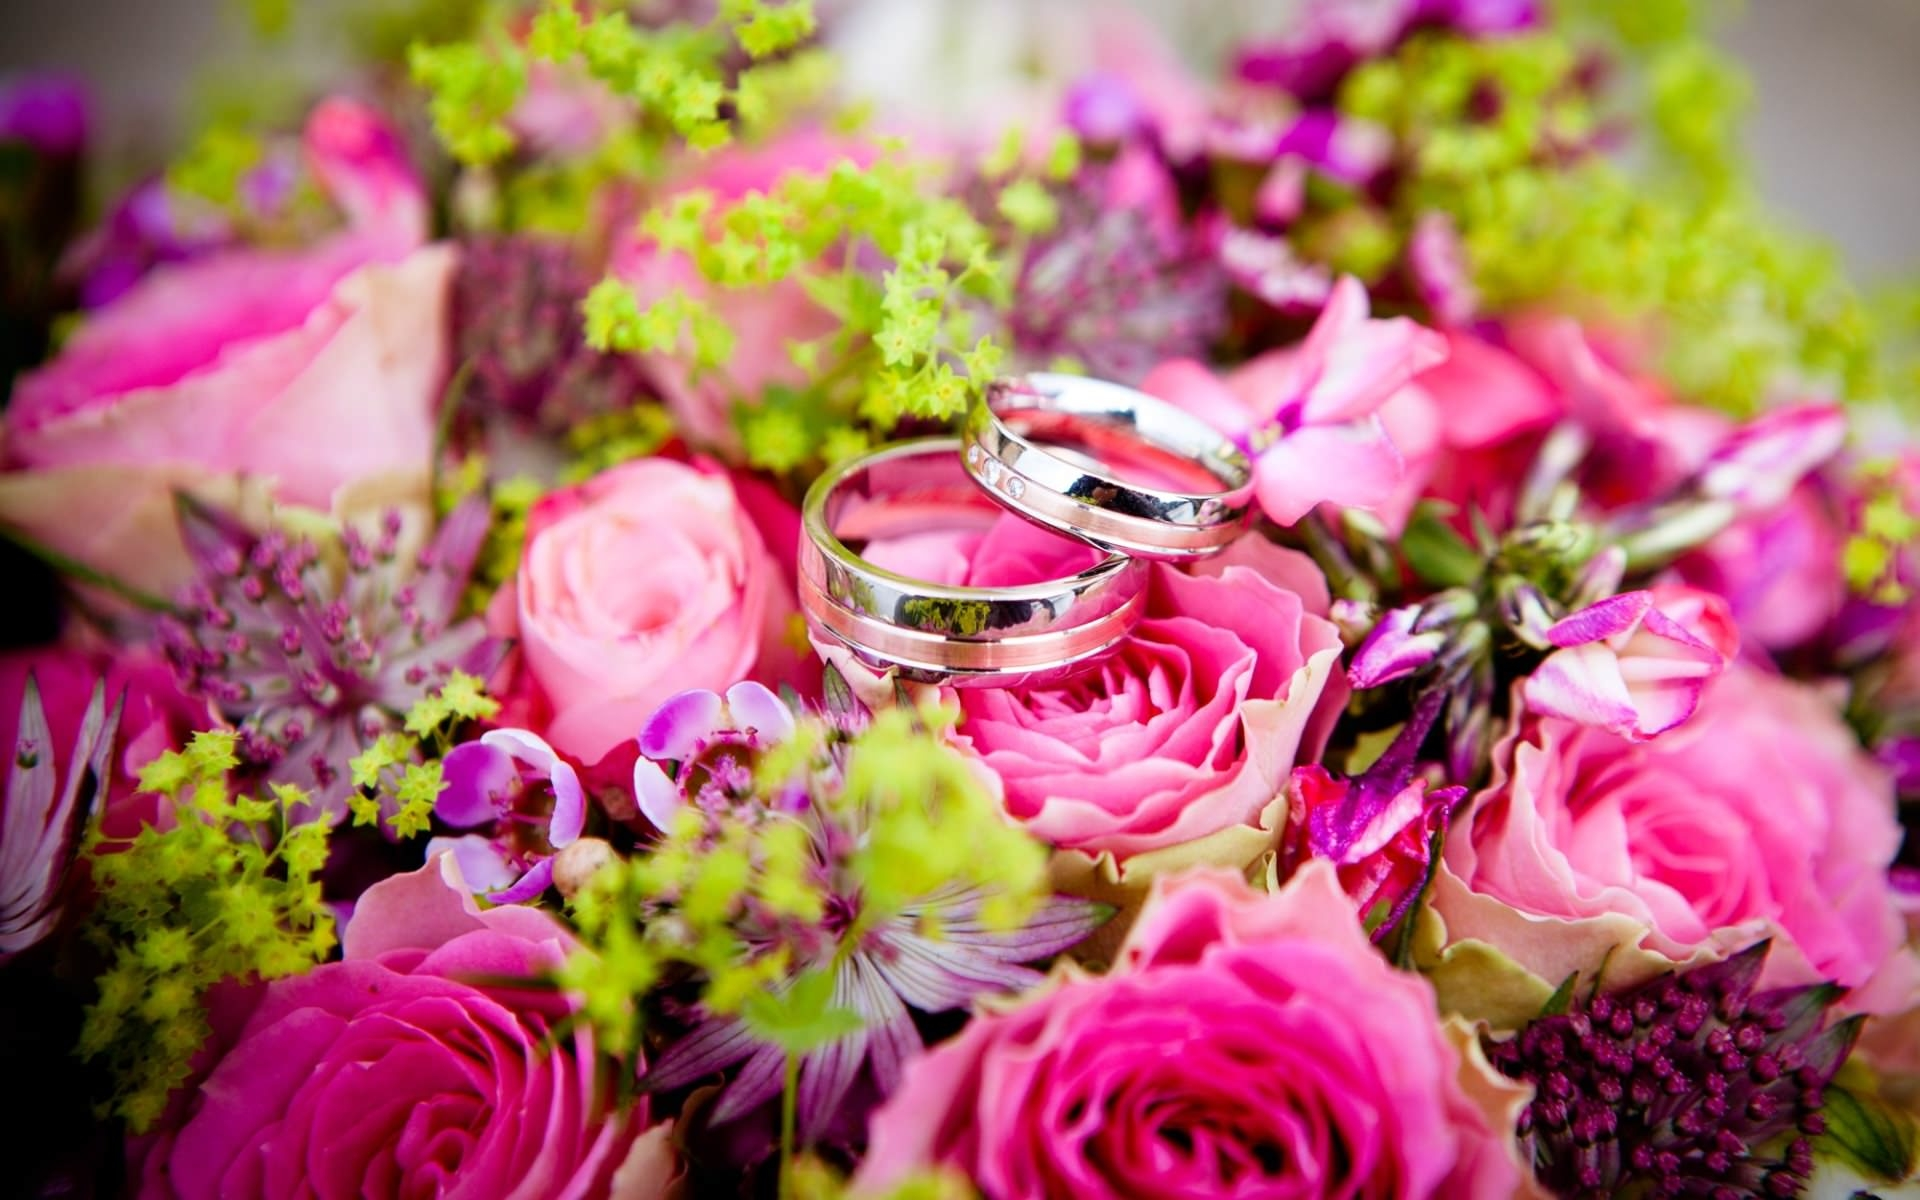 Wedding Rings on a Flowers Bouquet